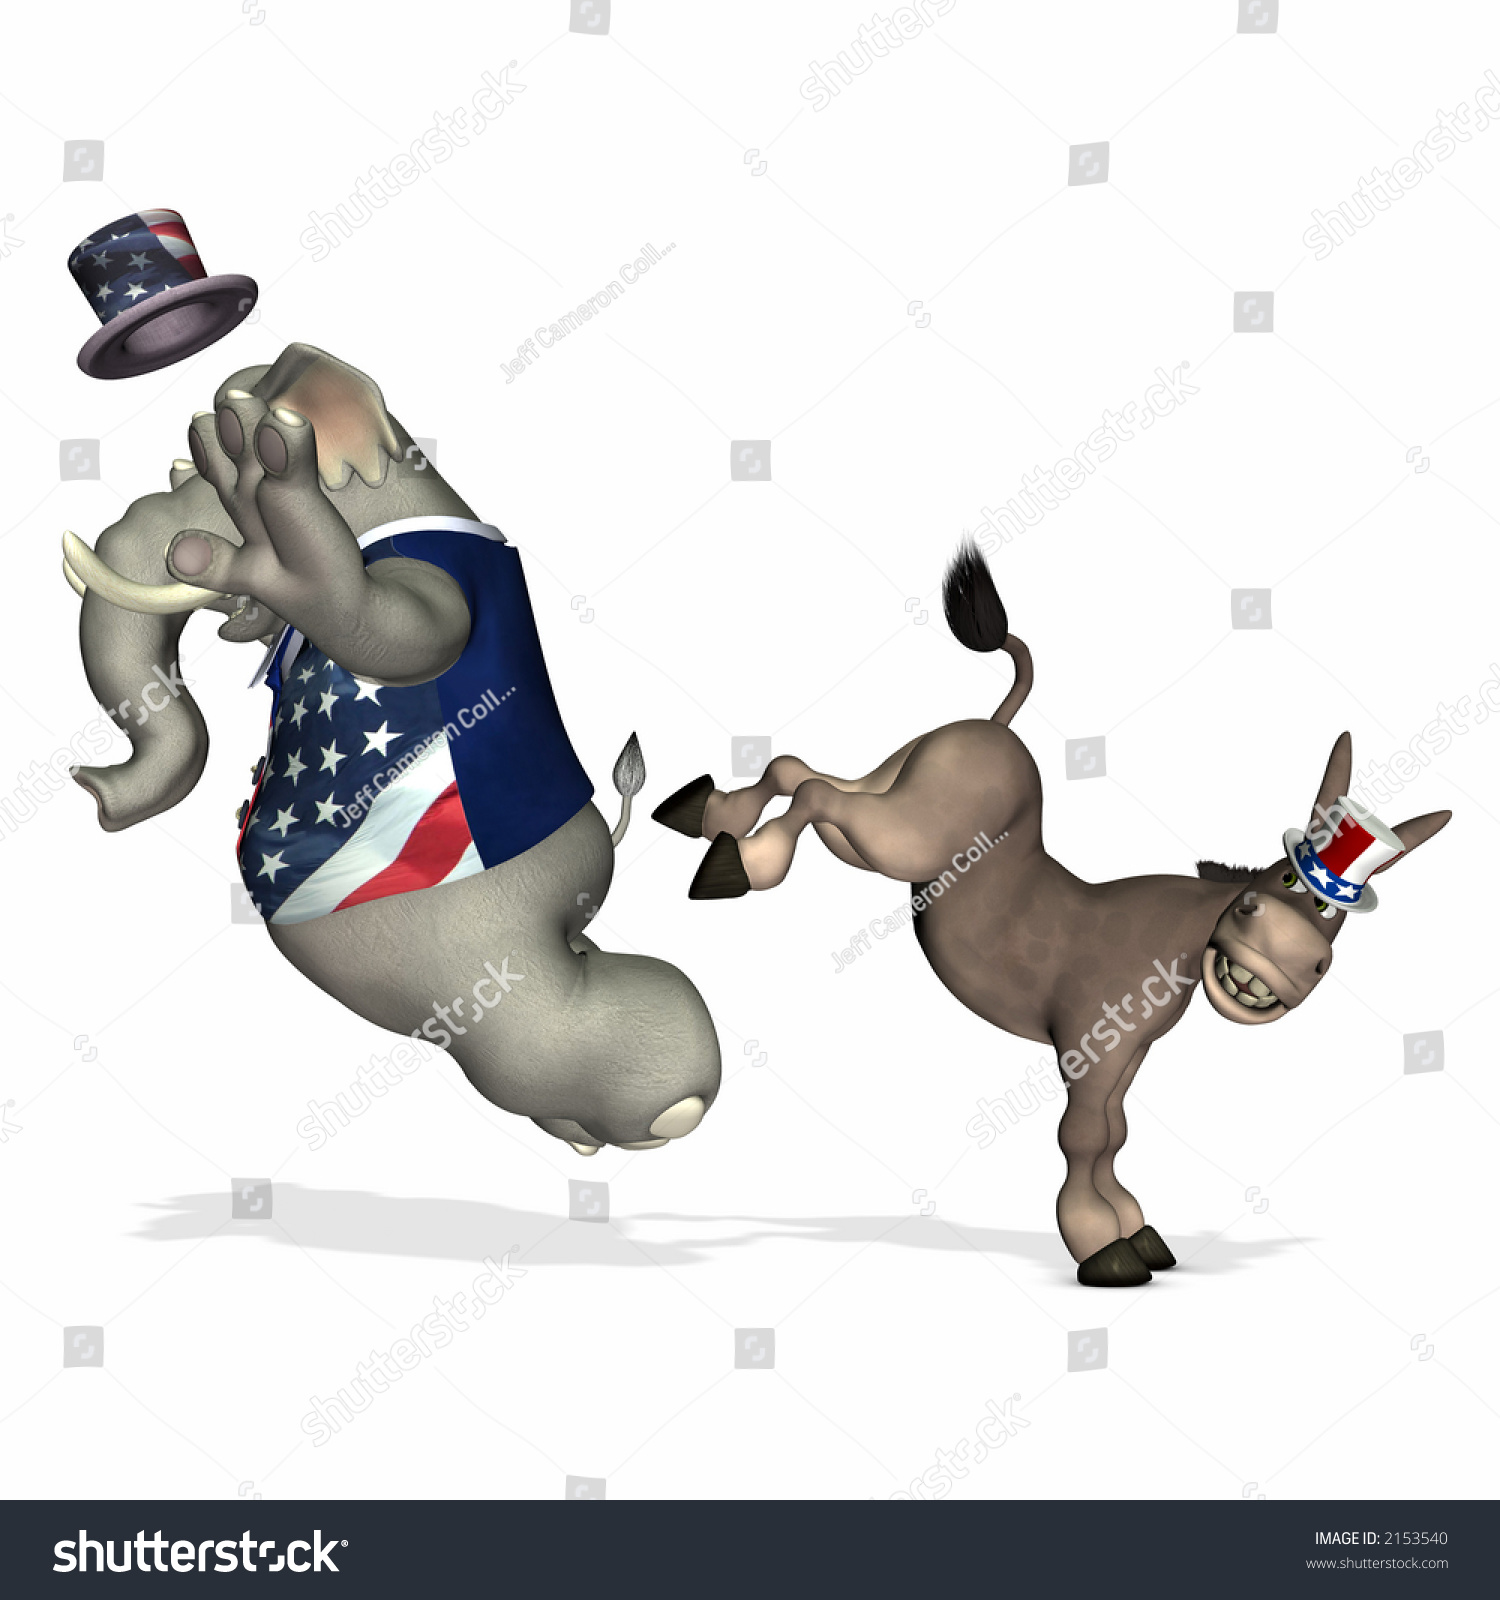 https://image.shutterstock.com/z/stock-photo-democrat-represented-by-a-donkey-kicking-the-republican-represented-by-an-elephant-political-humor-2153540.jpg